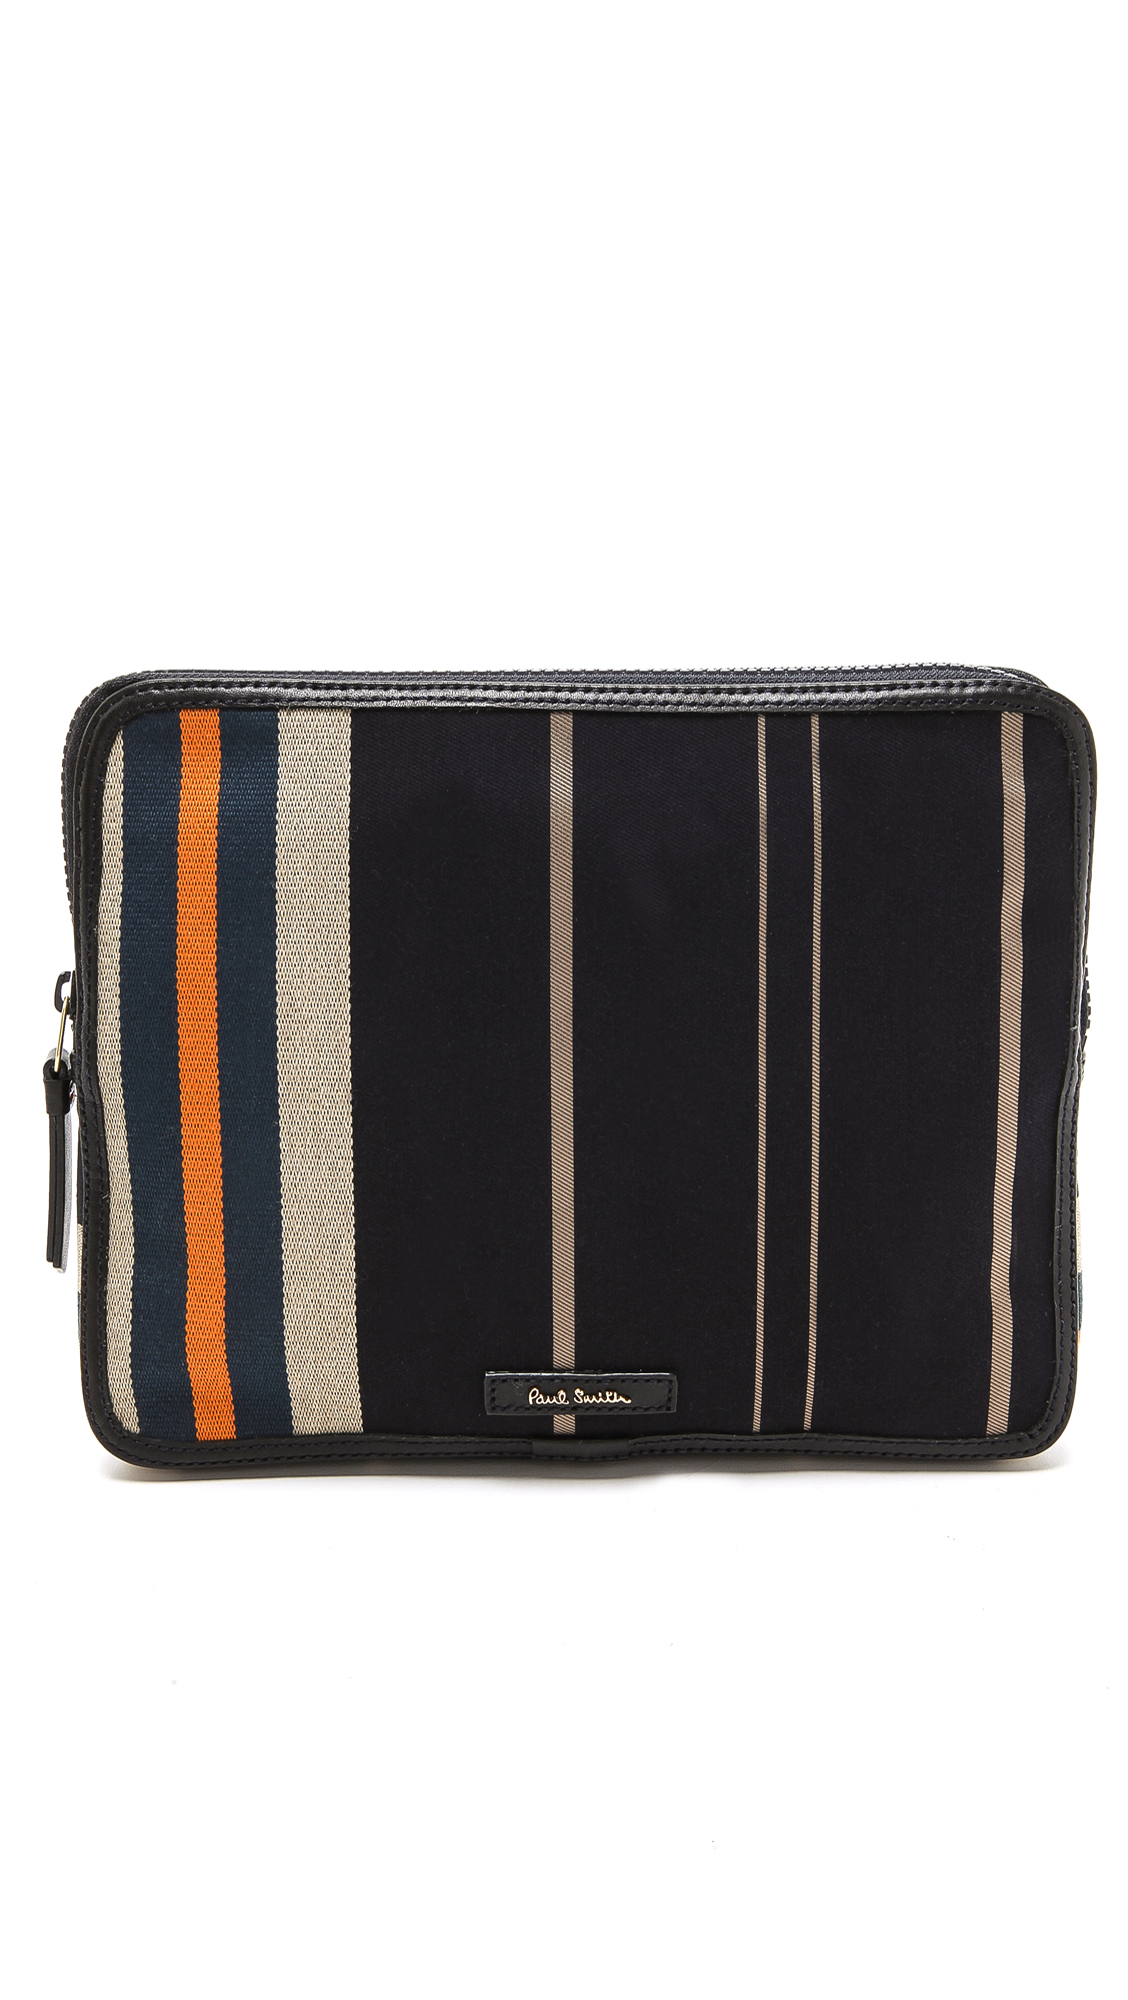 lyst paul smith regiment stripe ipad case in blue for men. Black Bedroom Furniture Sets. Home Design Ideas